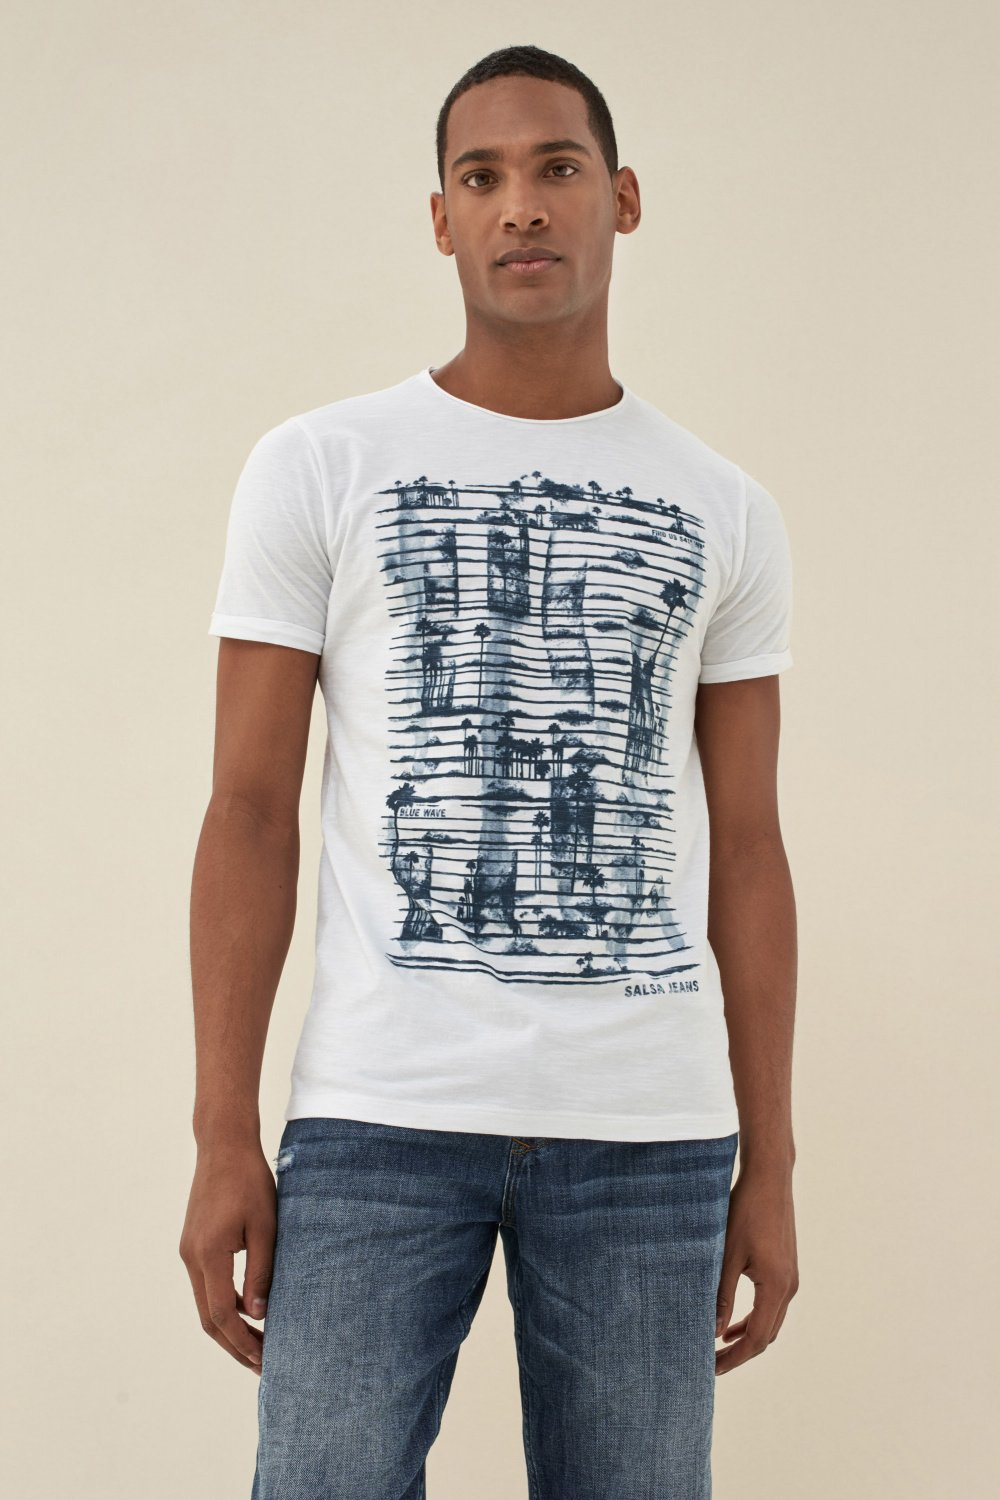 Cotton t-shirt with print - Salsa